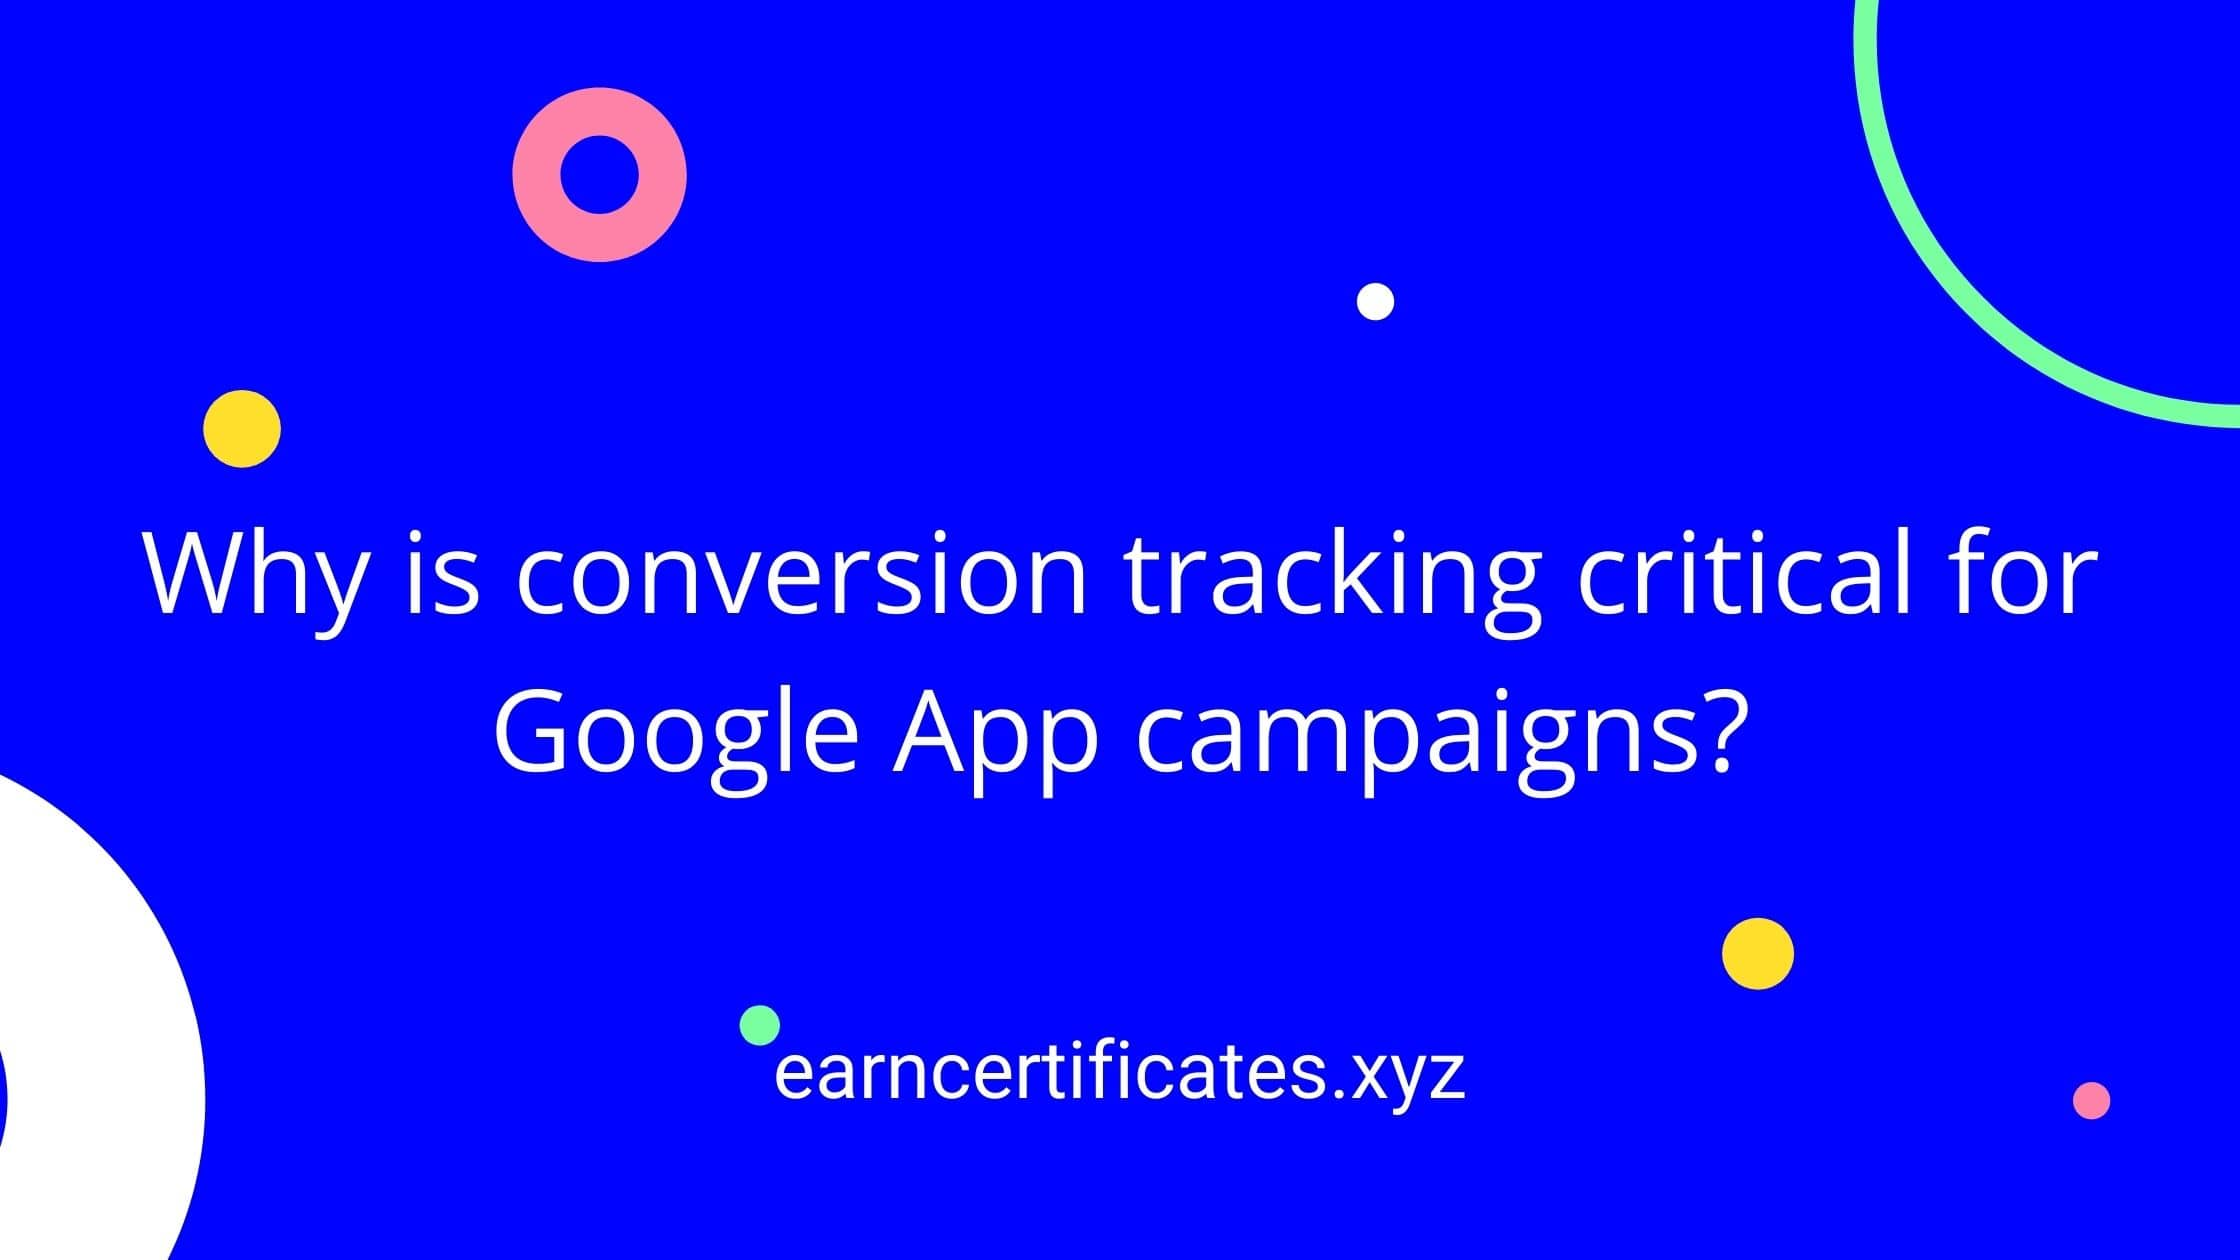 Why is conversion tracking critical for Google App campaigns?